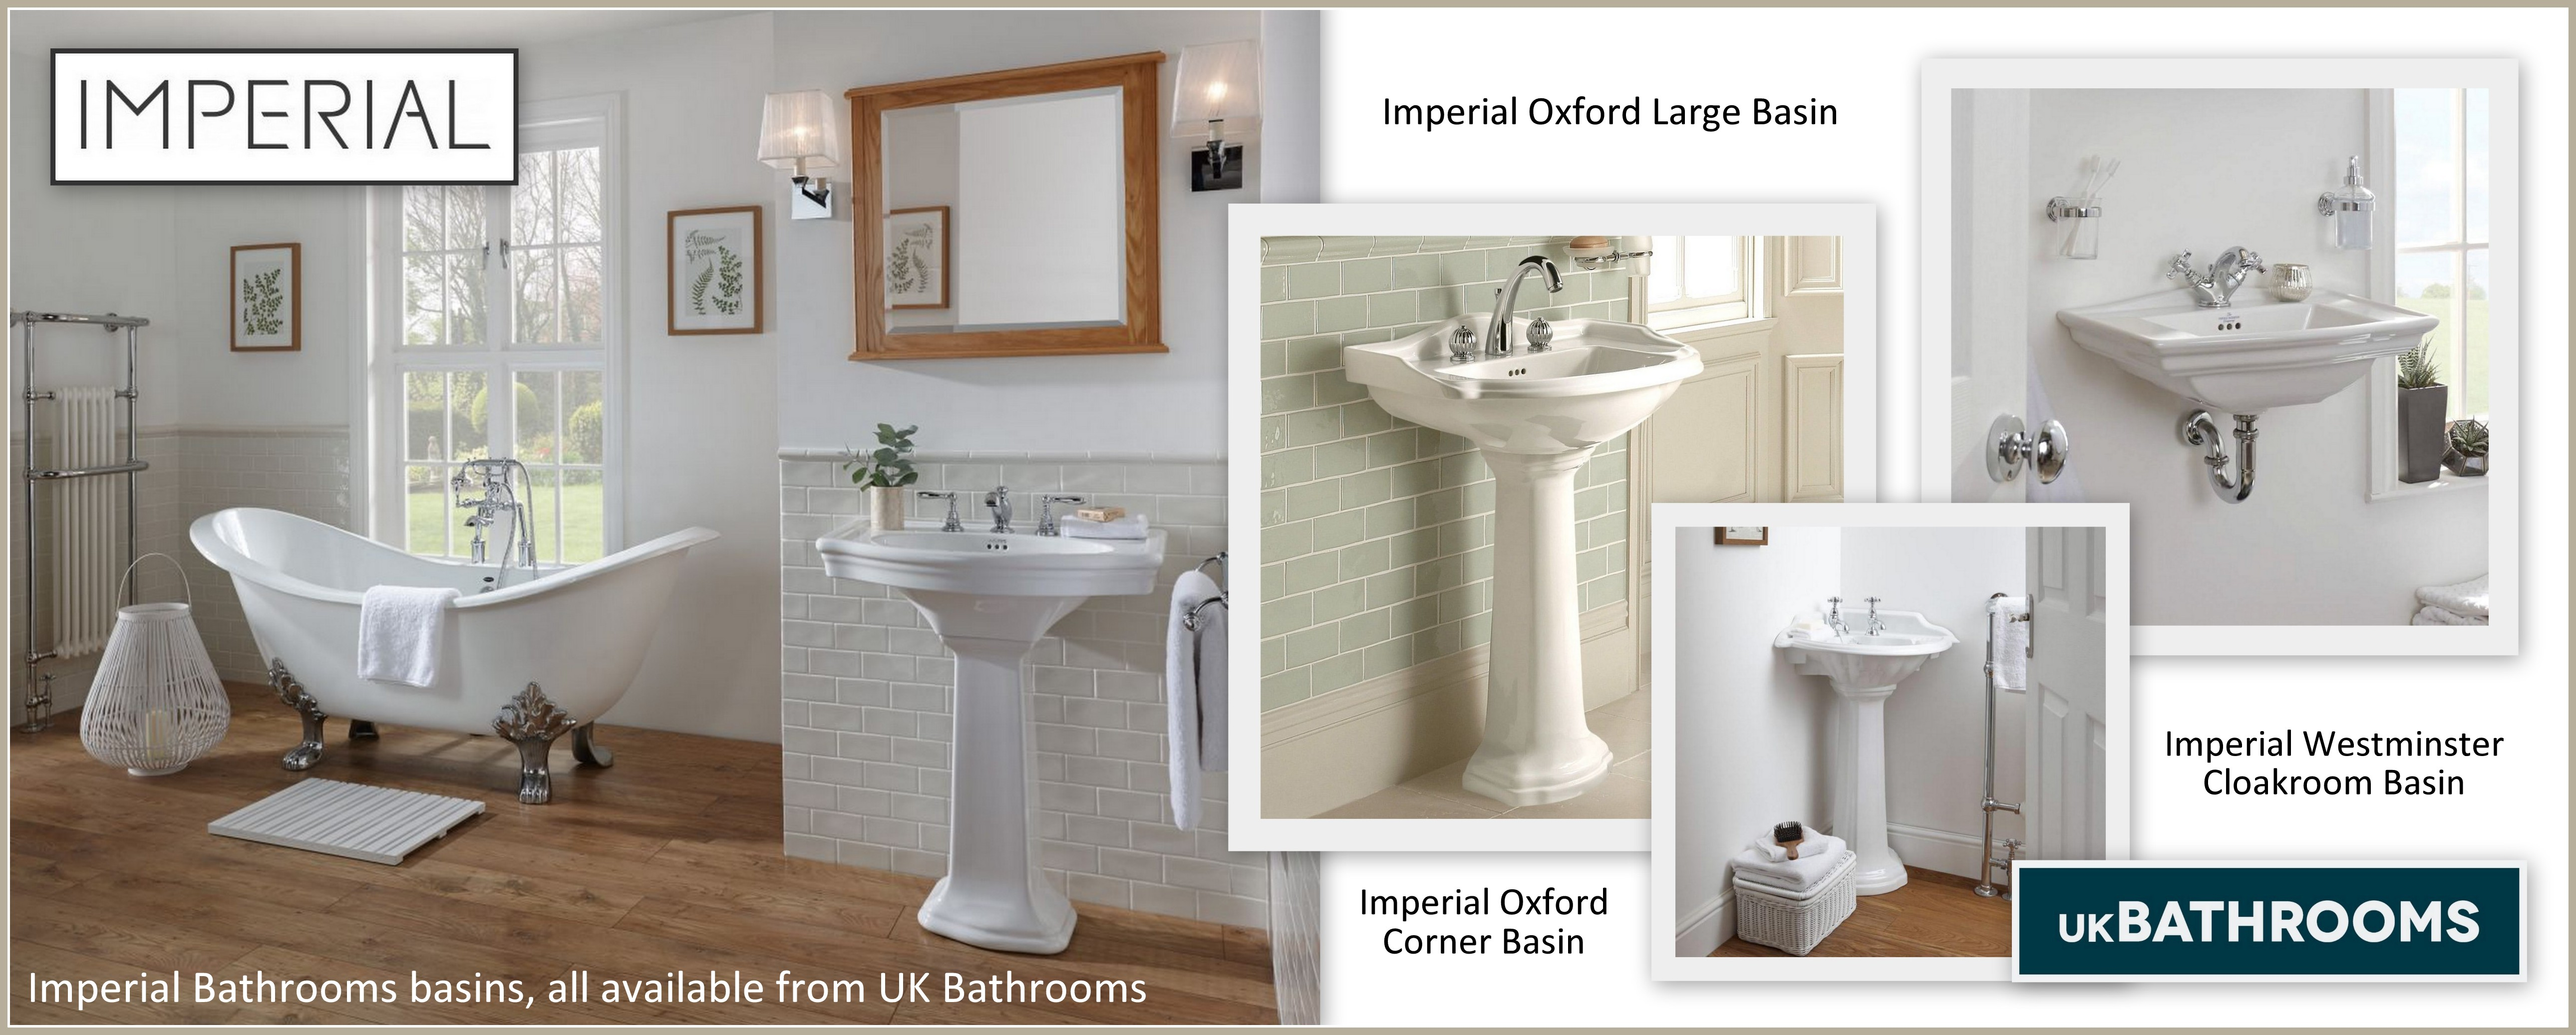 Imperial Bathrooms Basins